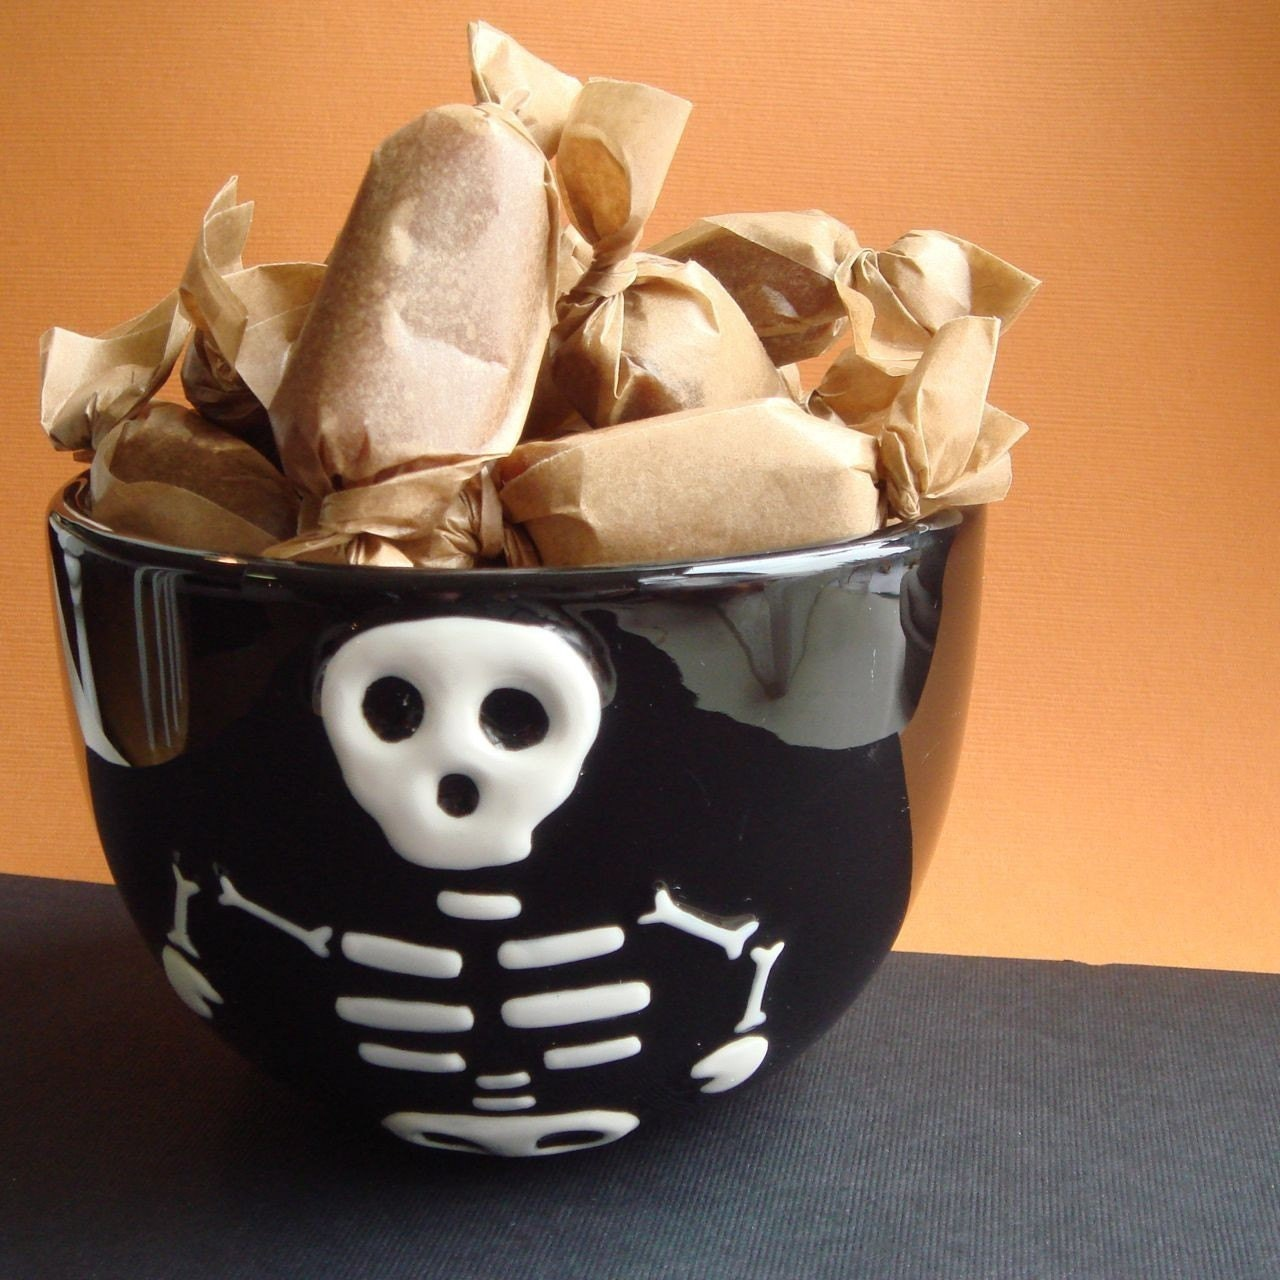 The Caramel Halloween Candy Bowl Filler - Small